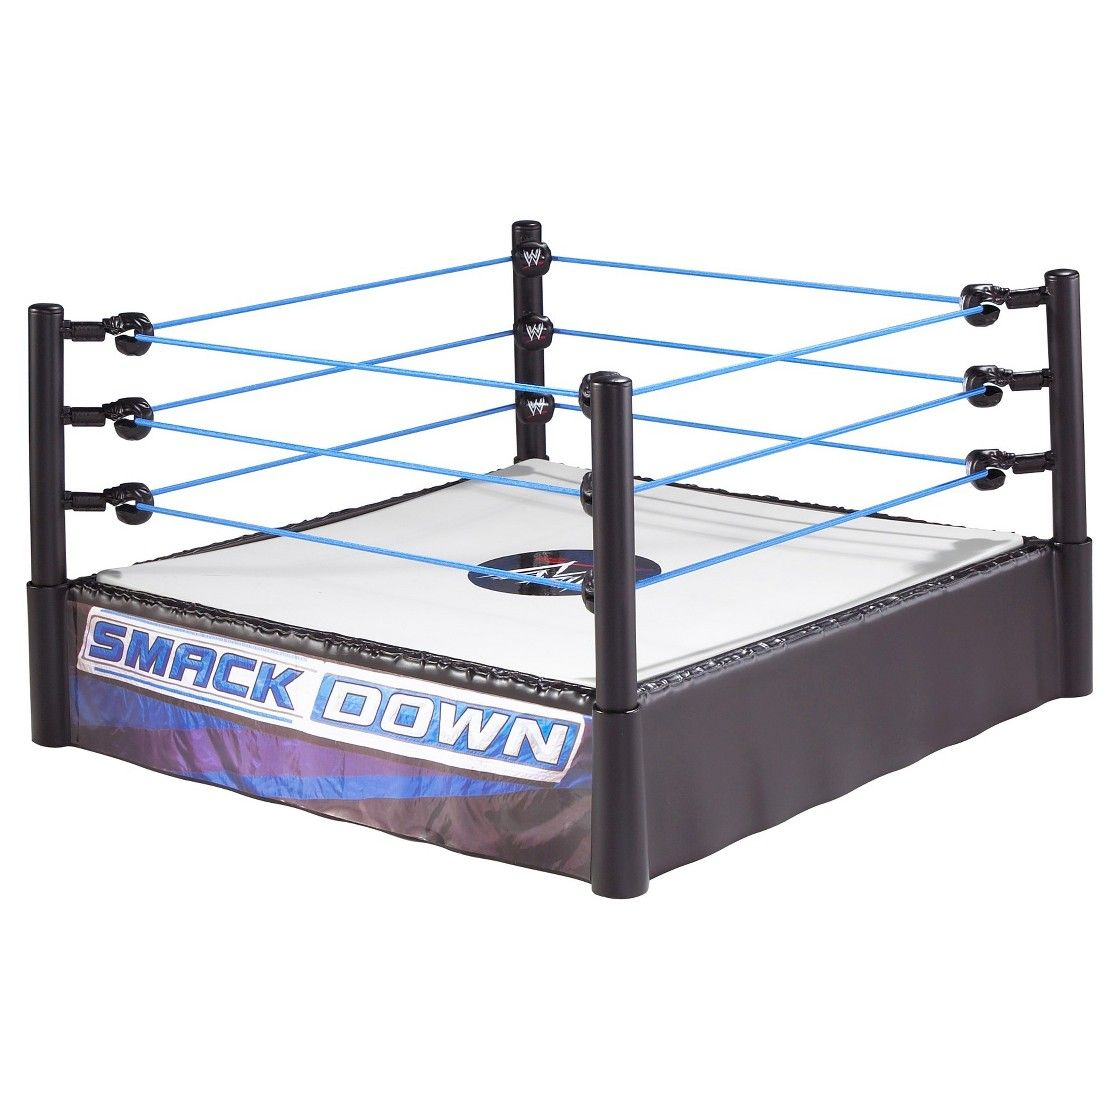 Wwe Smackdown Superstar Ring Wwe Toys Wwe Superstars Wwe